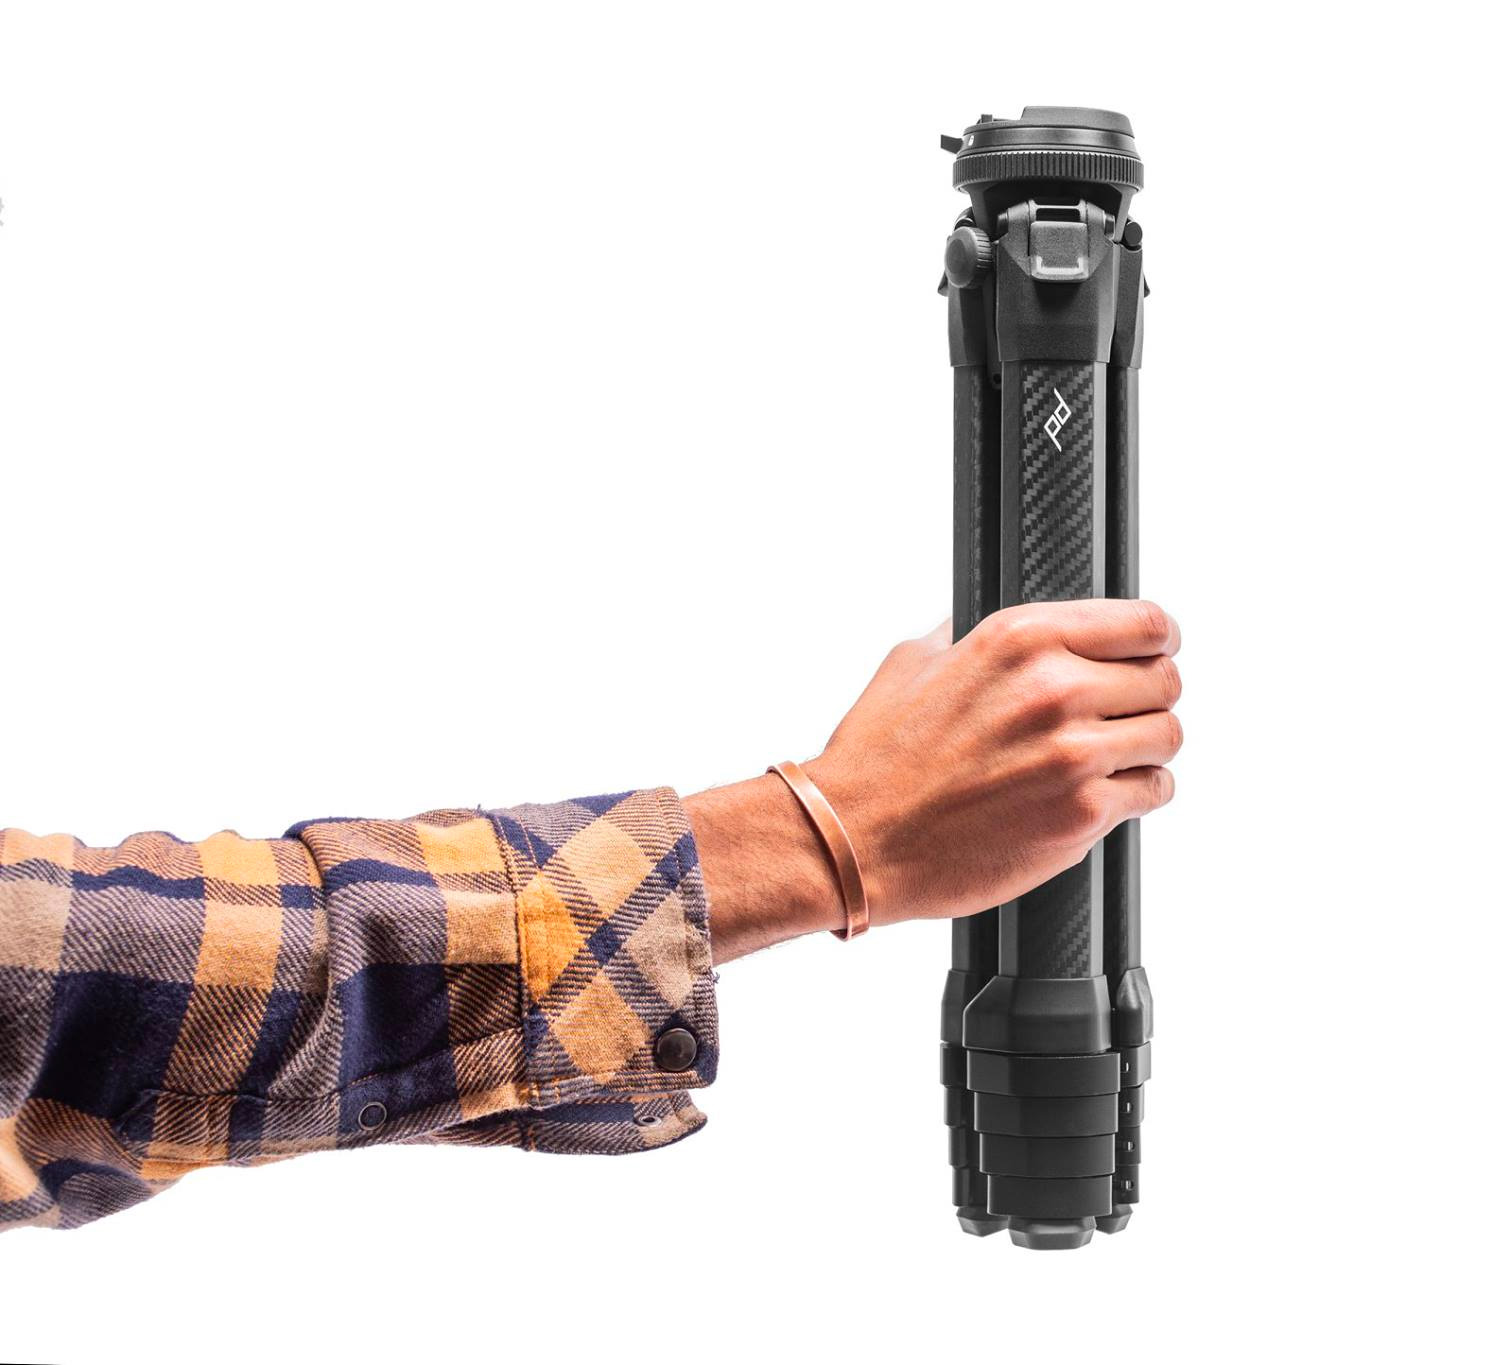 Get All the Tripod at Half the Size & Weight at werd.com